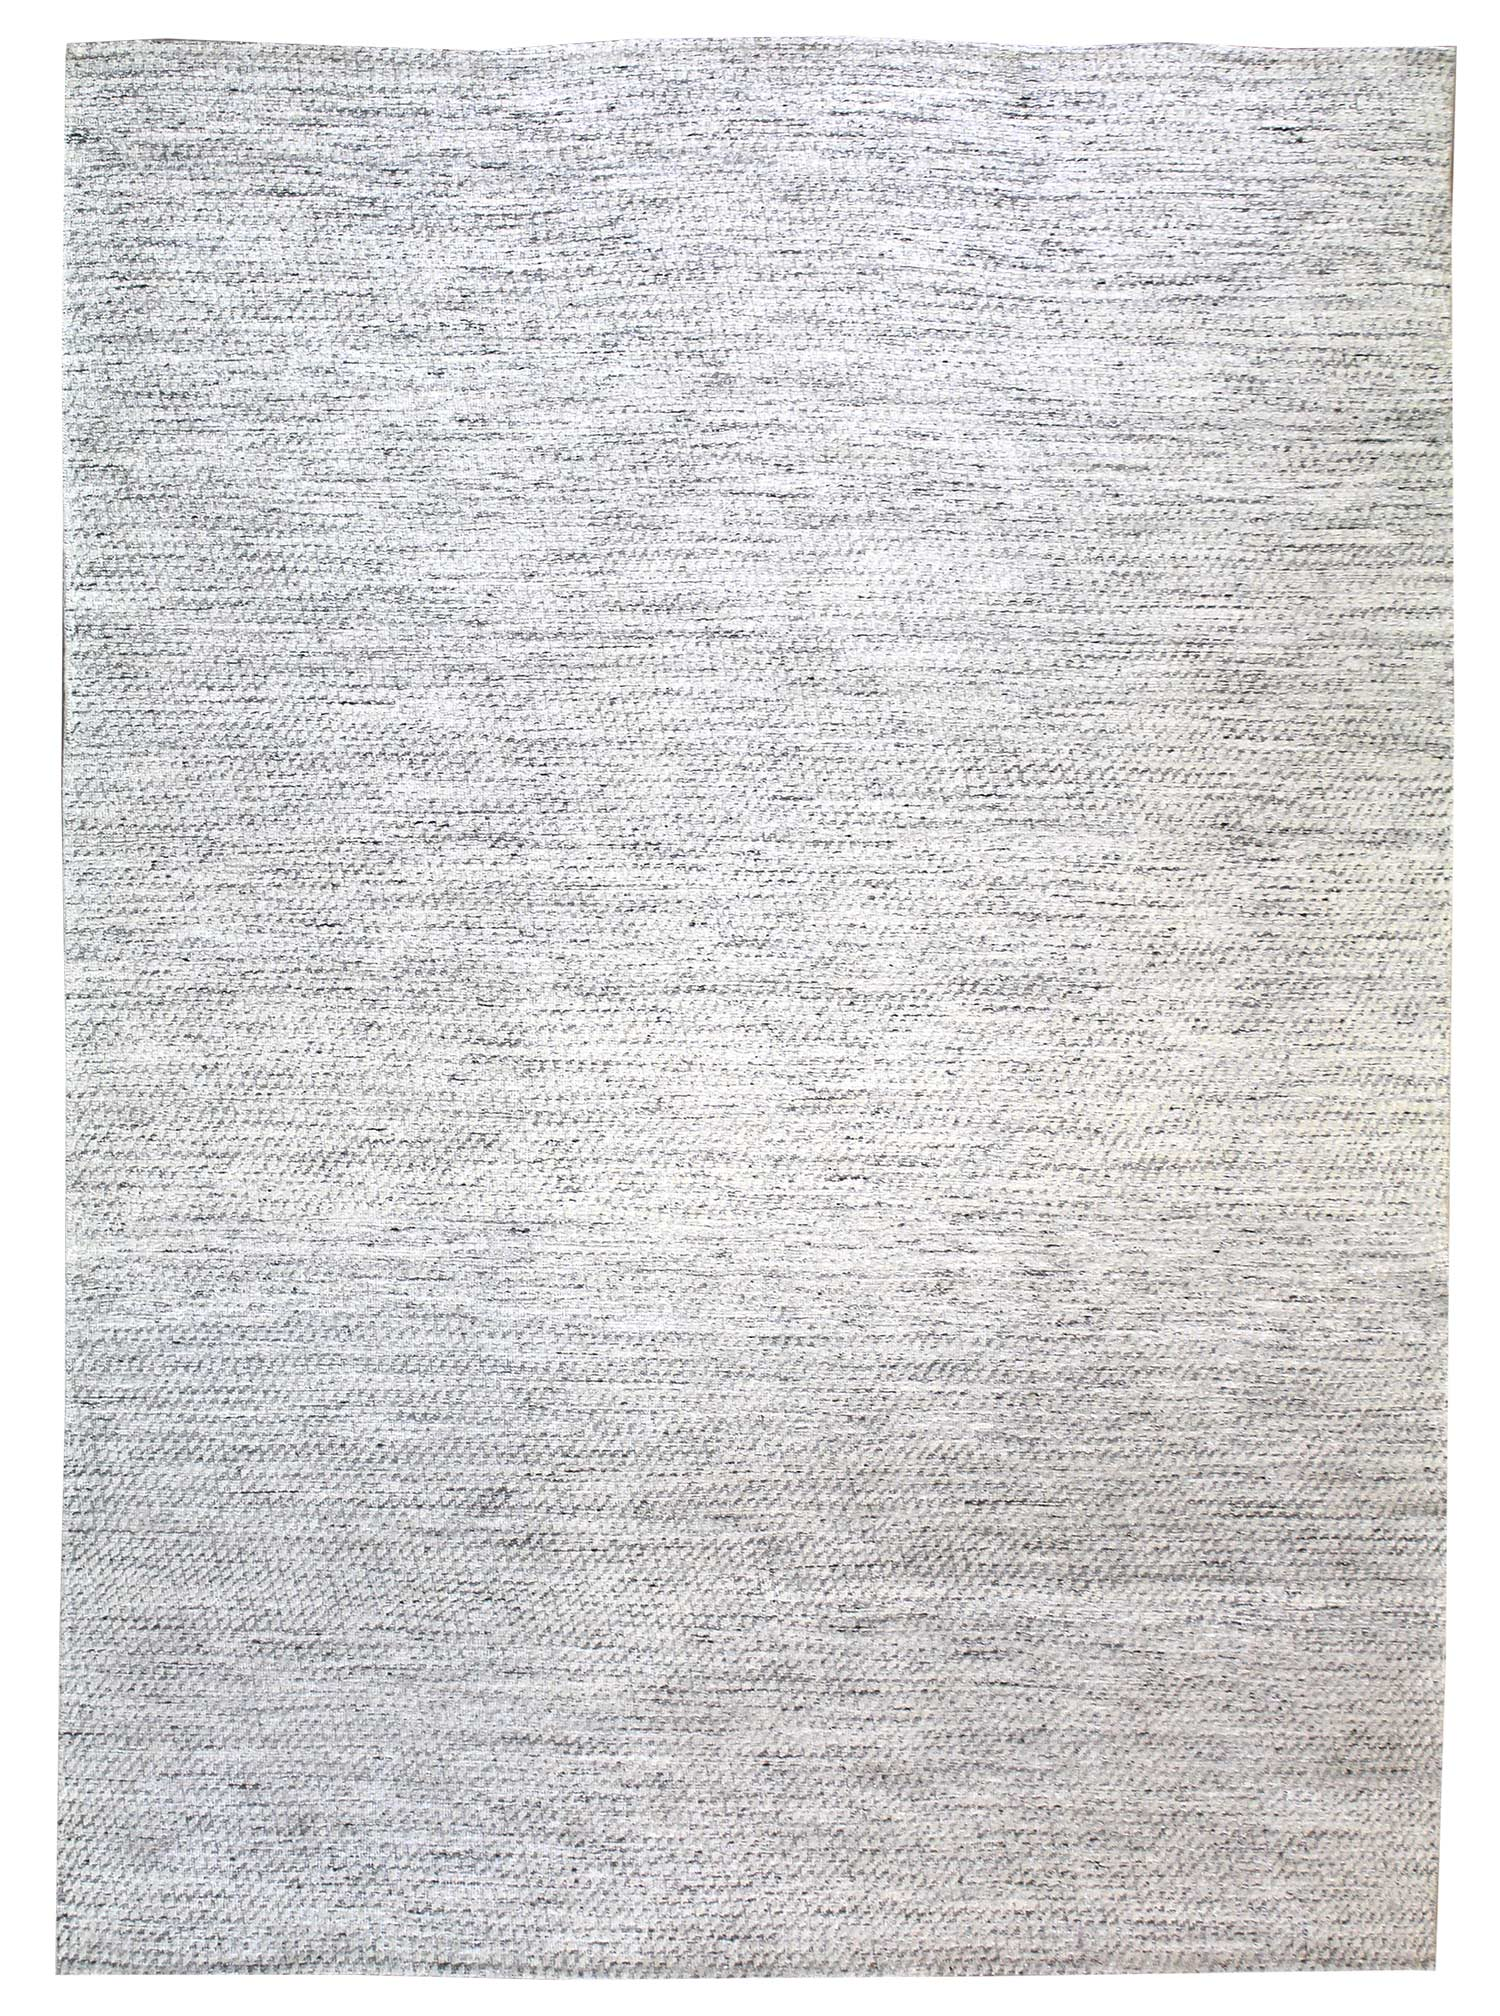 Pin Dot Handwoven Contemporary Rug